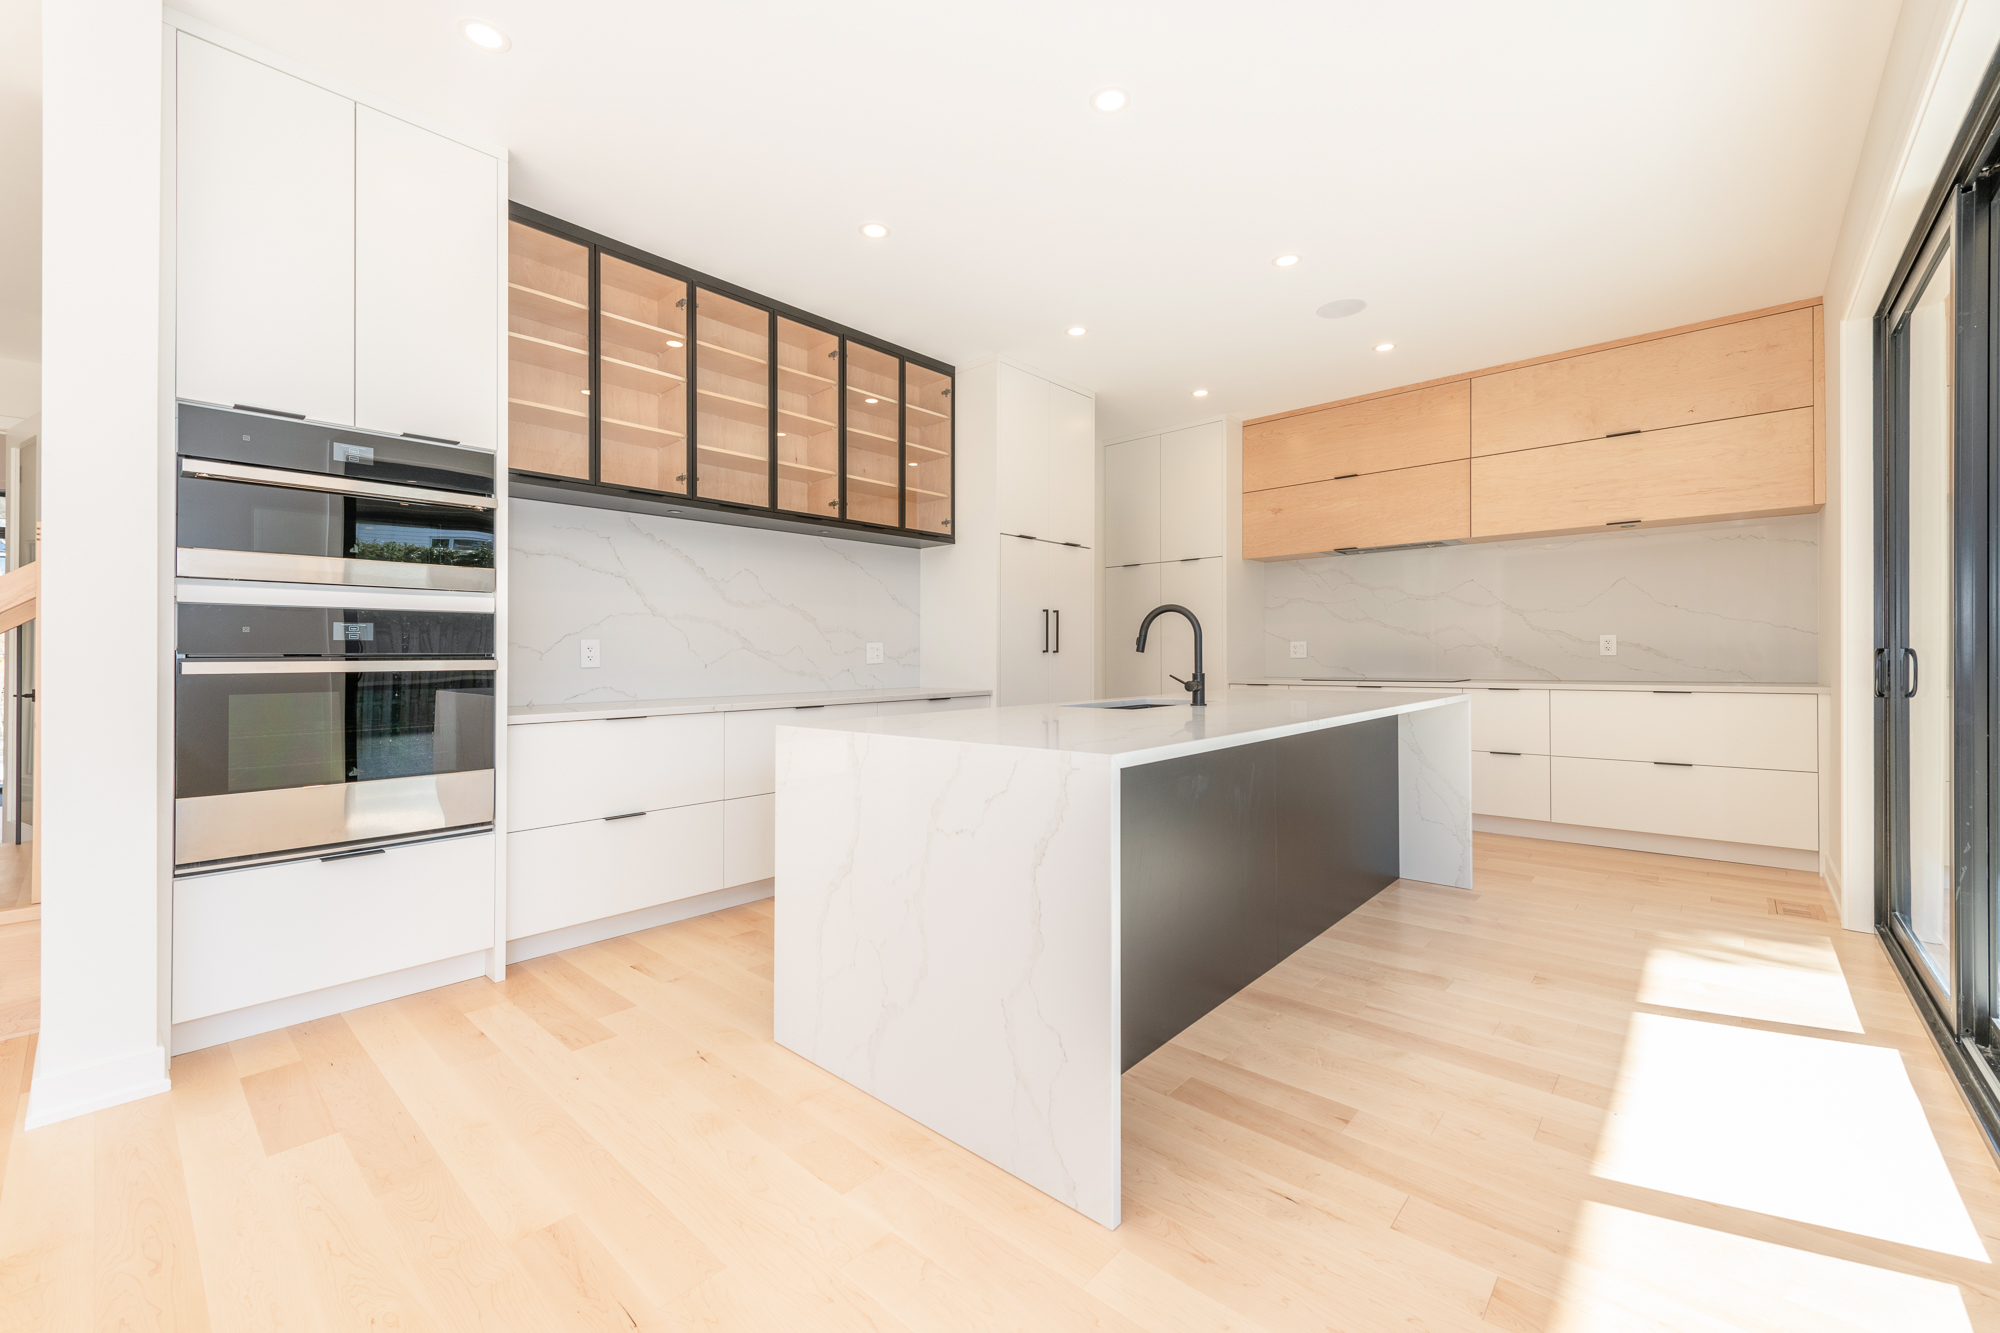 A spacious new-build kitchen with recessed pot lights.